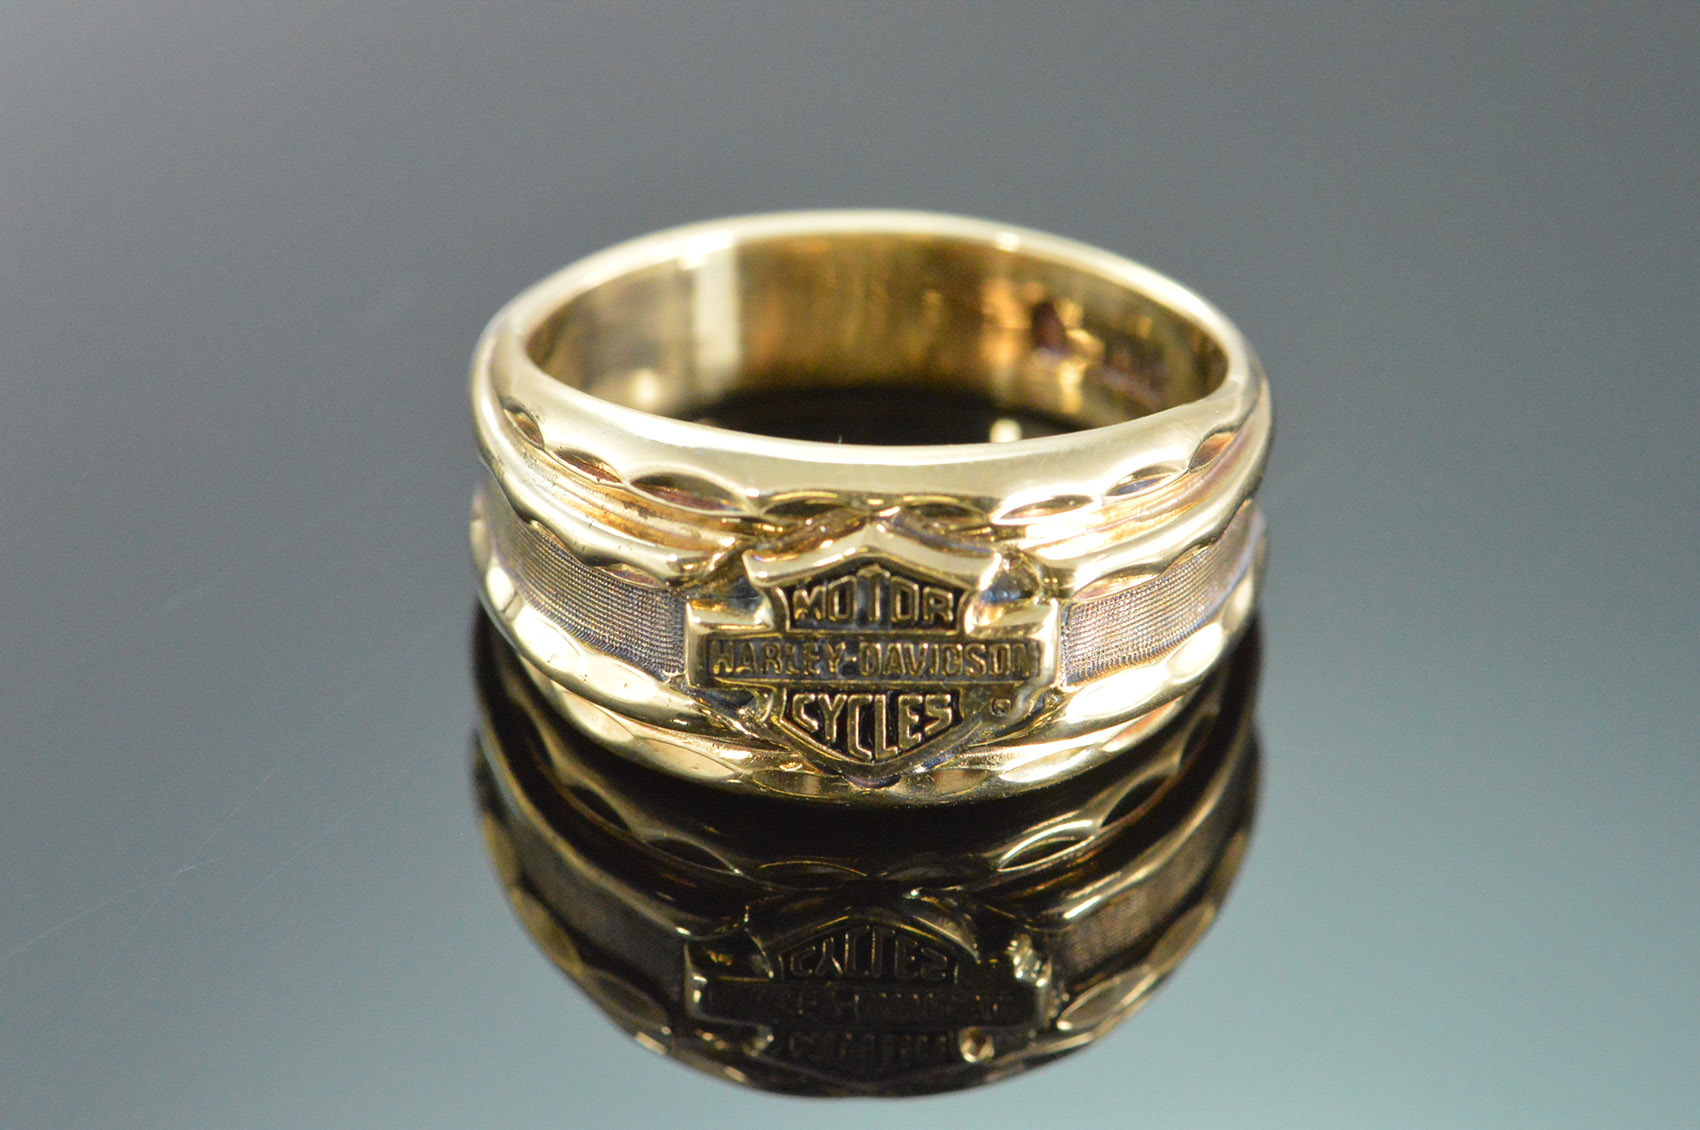 It is a photo of 339K 339.339g Harley Davidson Motorcycle Band Yellow Gold Ring, Size 39